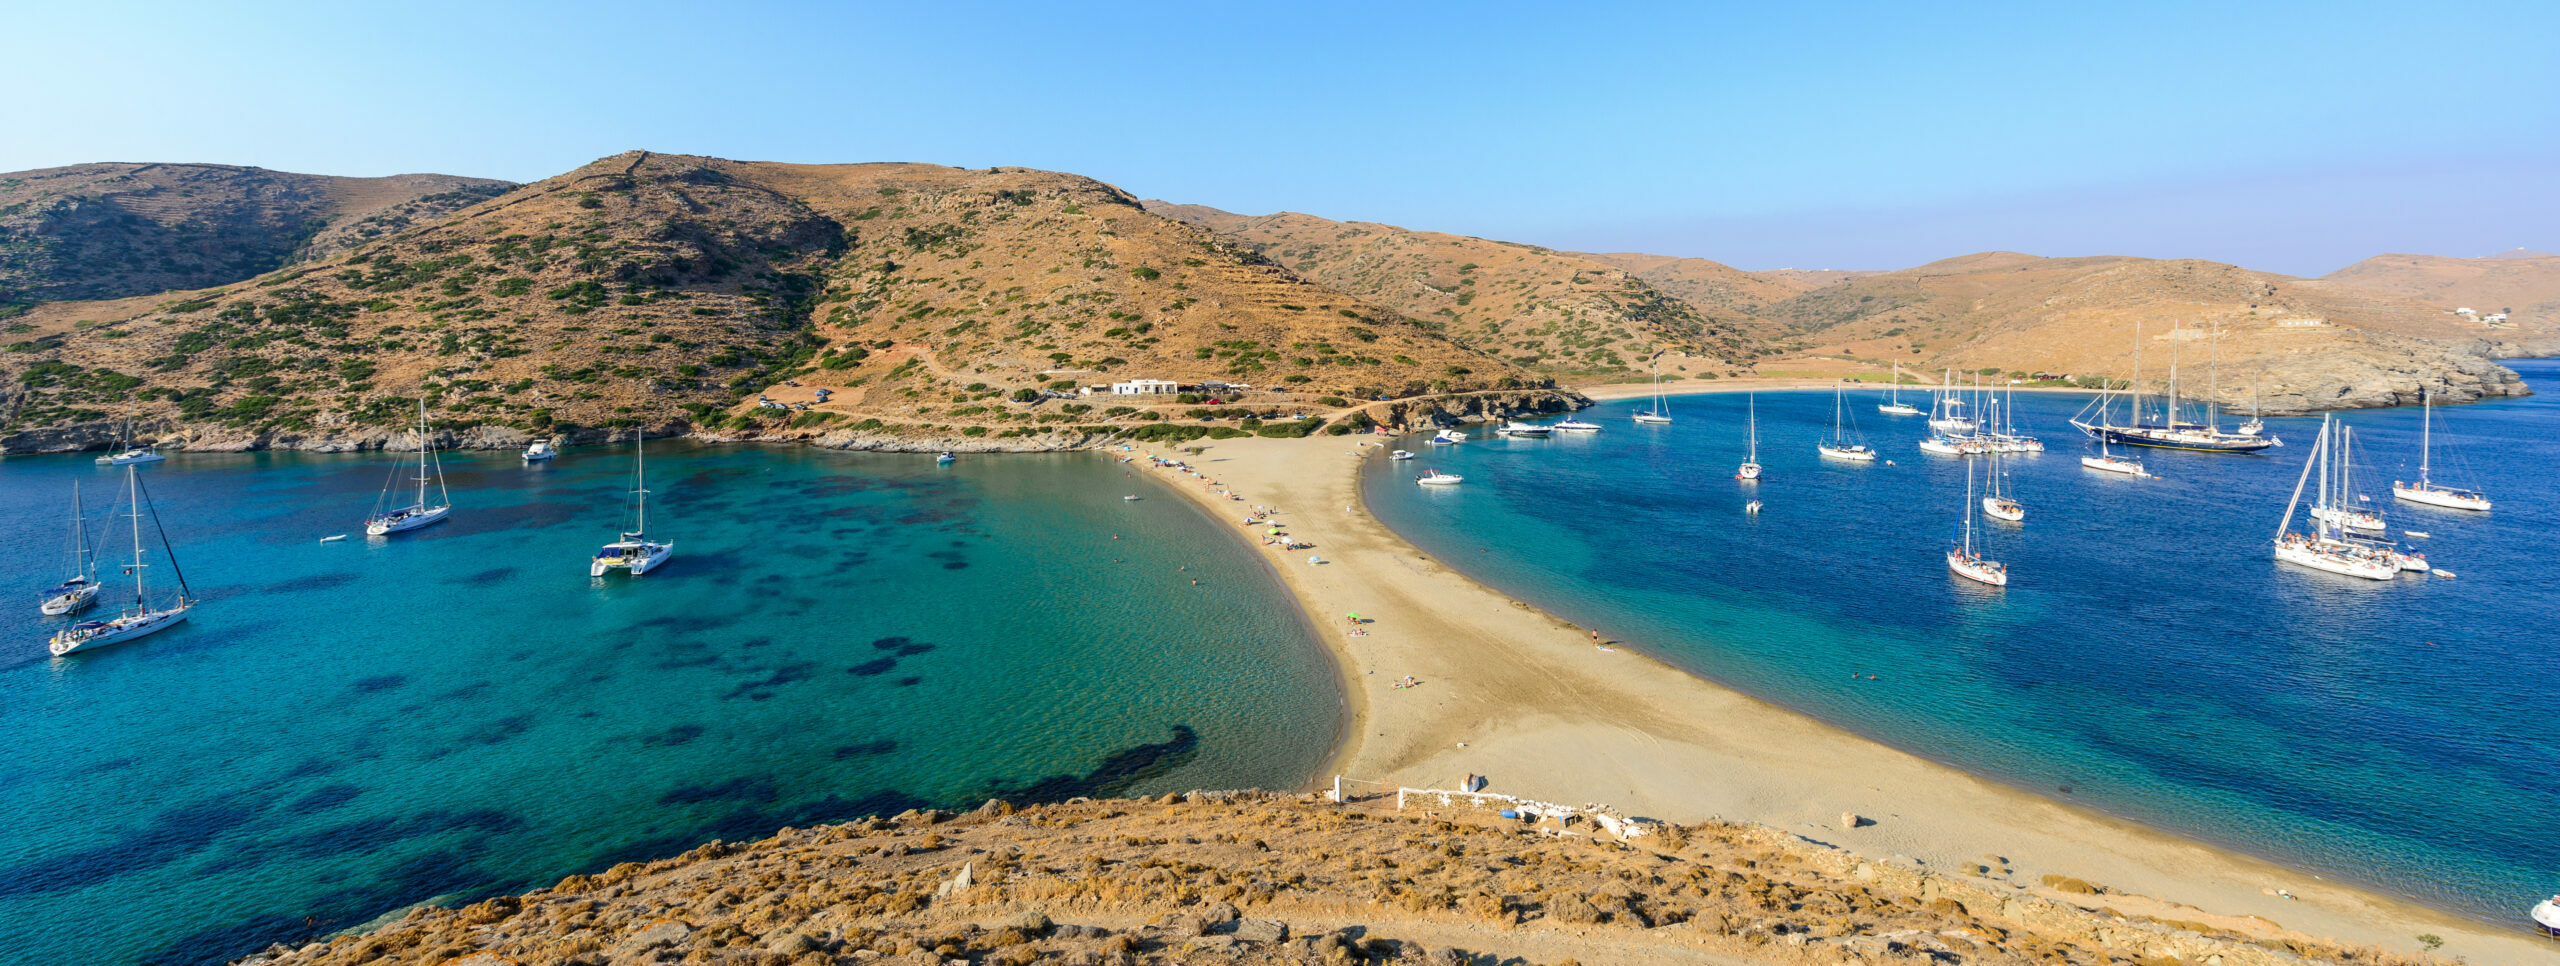 Kolona: The beautiful beach and the first surprise you have when you see it